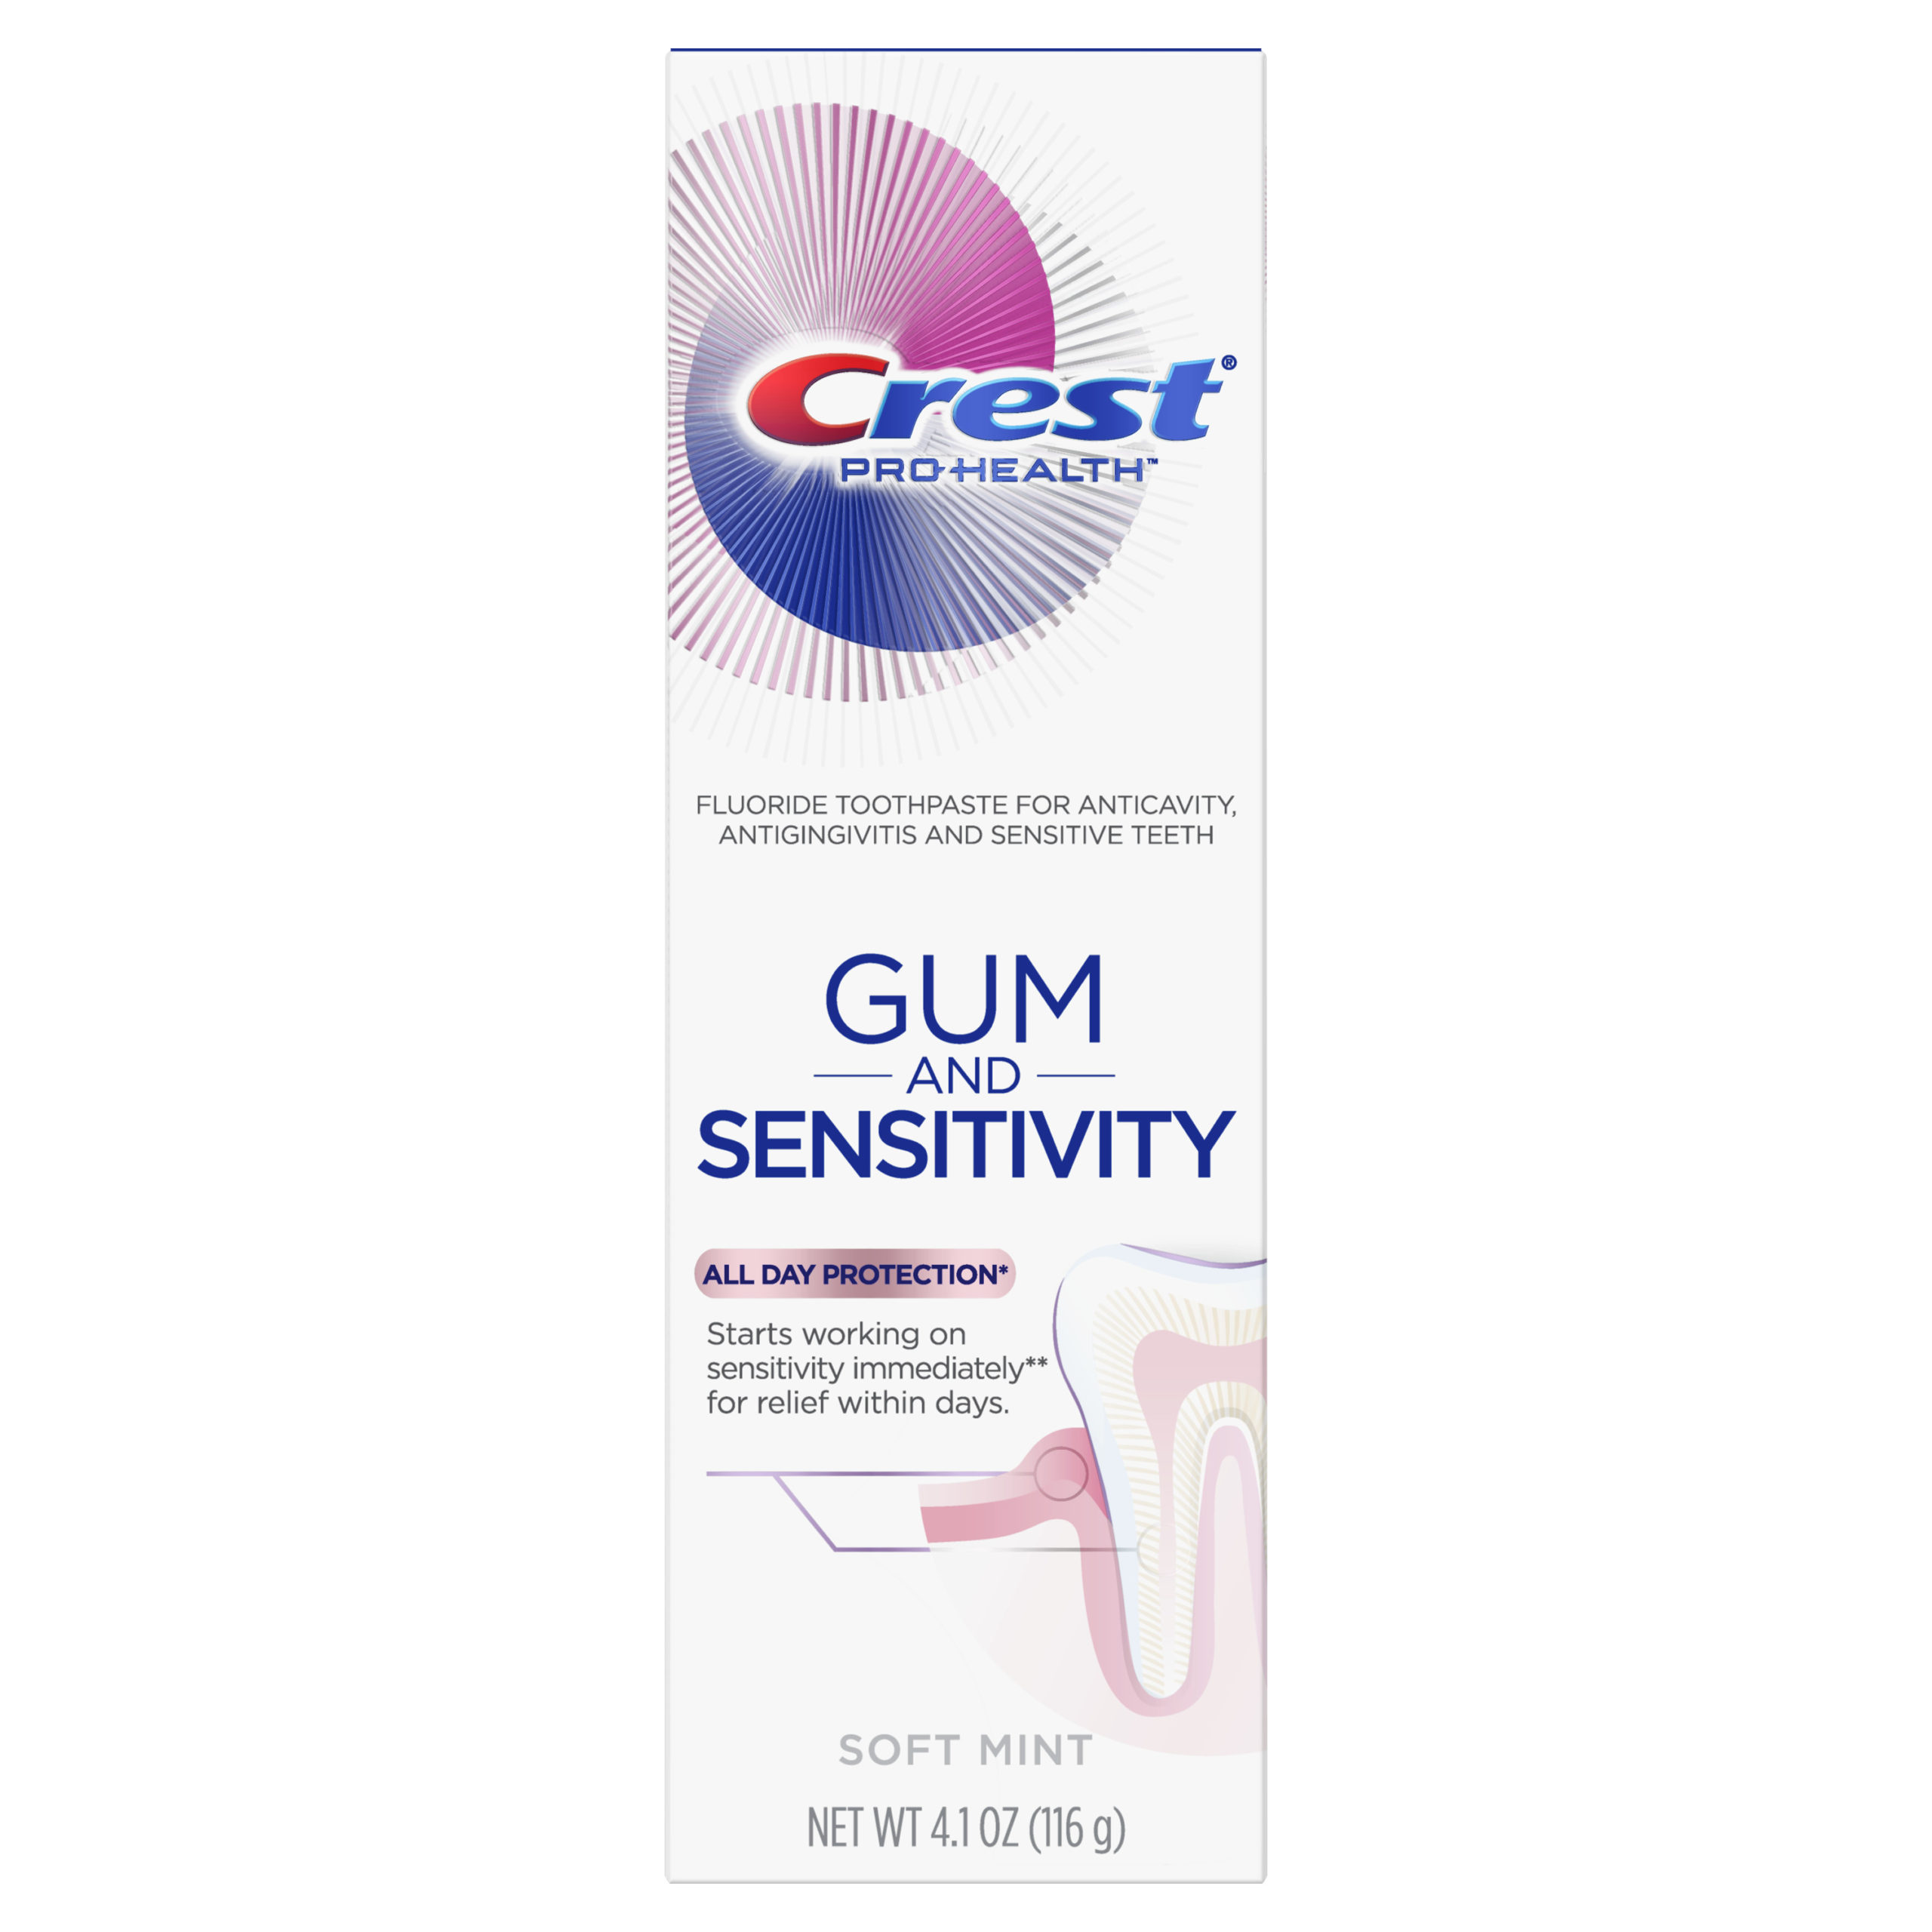 Crest Gum and Sensitivity All Day Protection